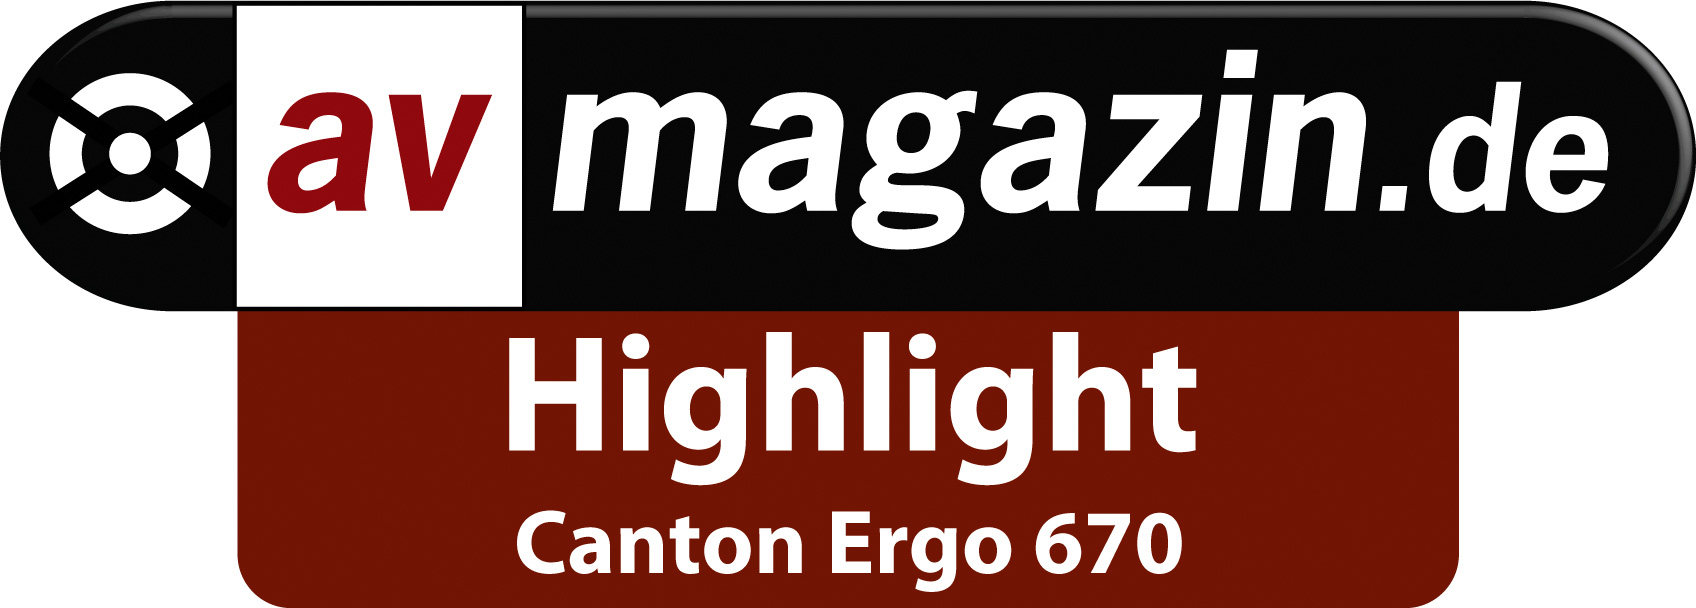 Ergo_670_DC_av-magazin_Highlight